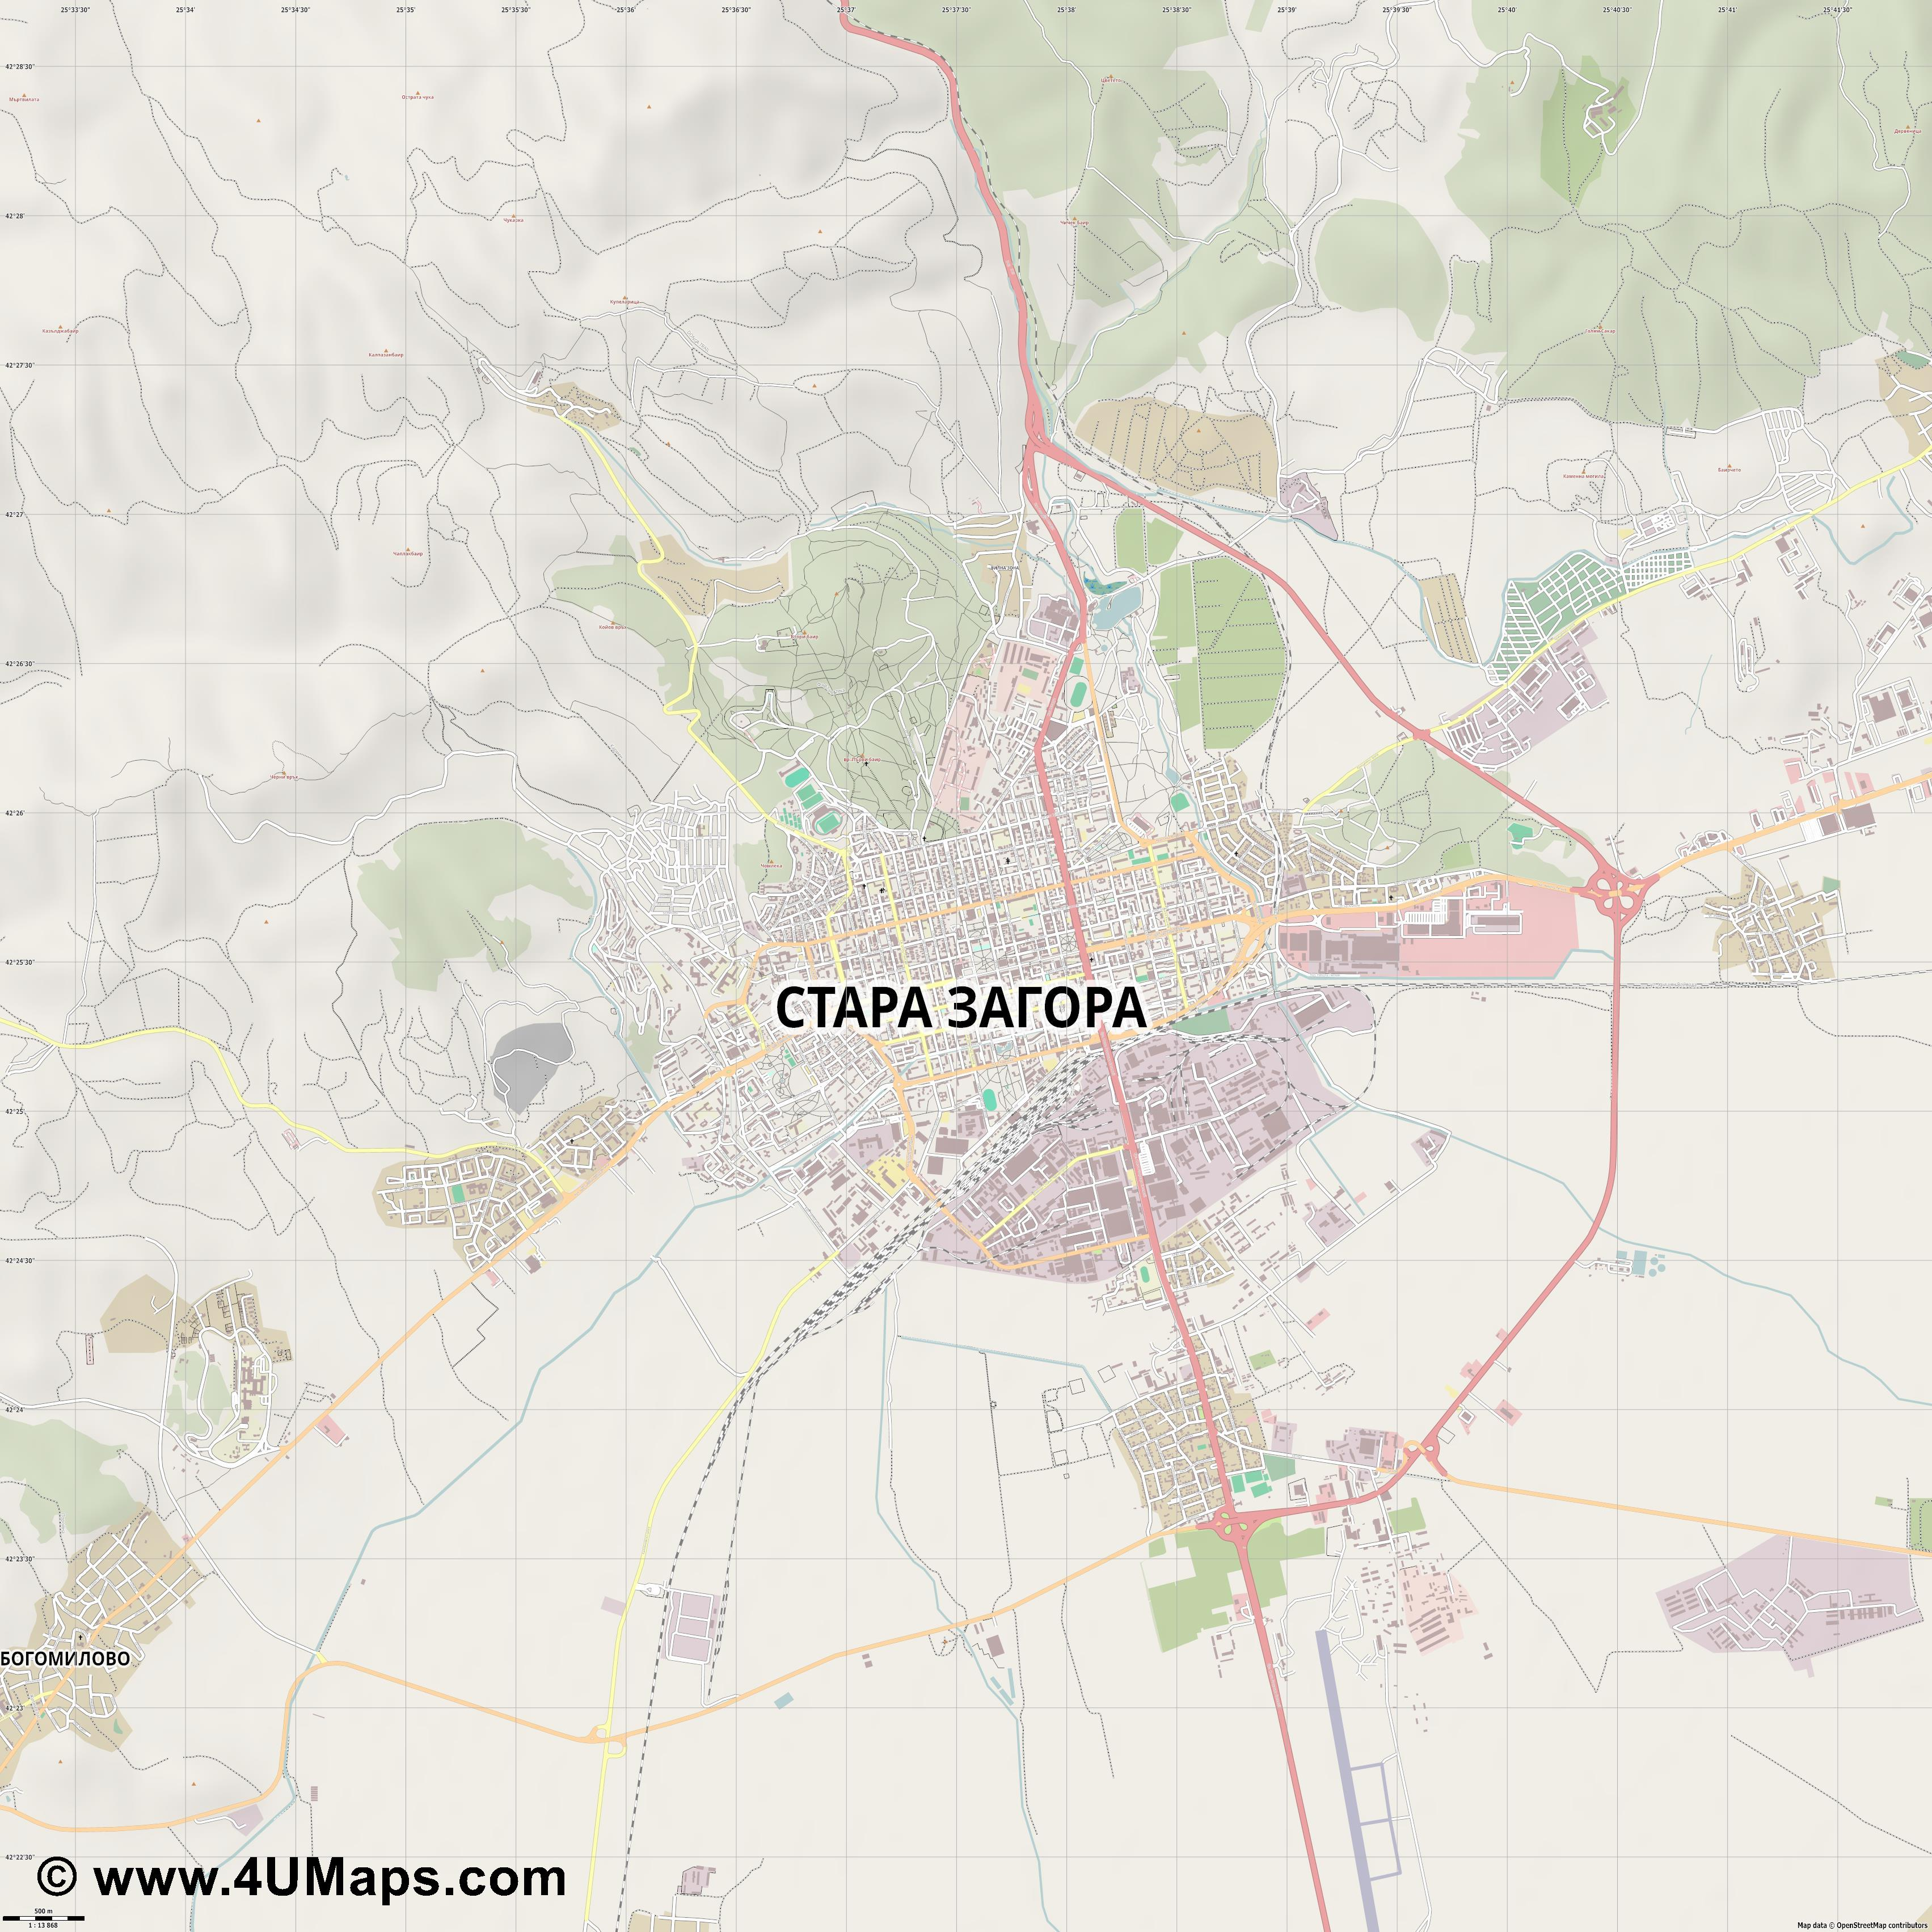 Pdf Svg Scalable City Map Vector Stara Zagora